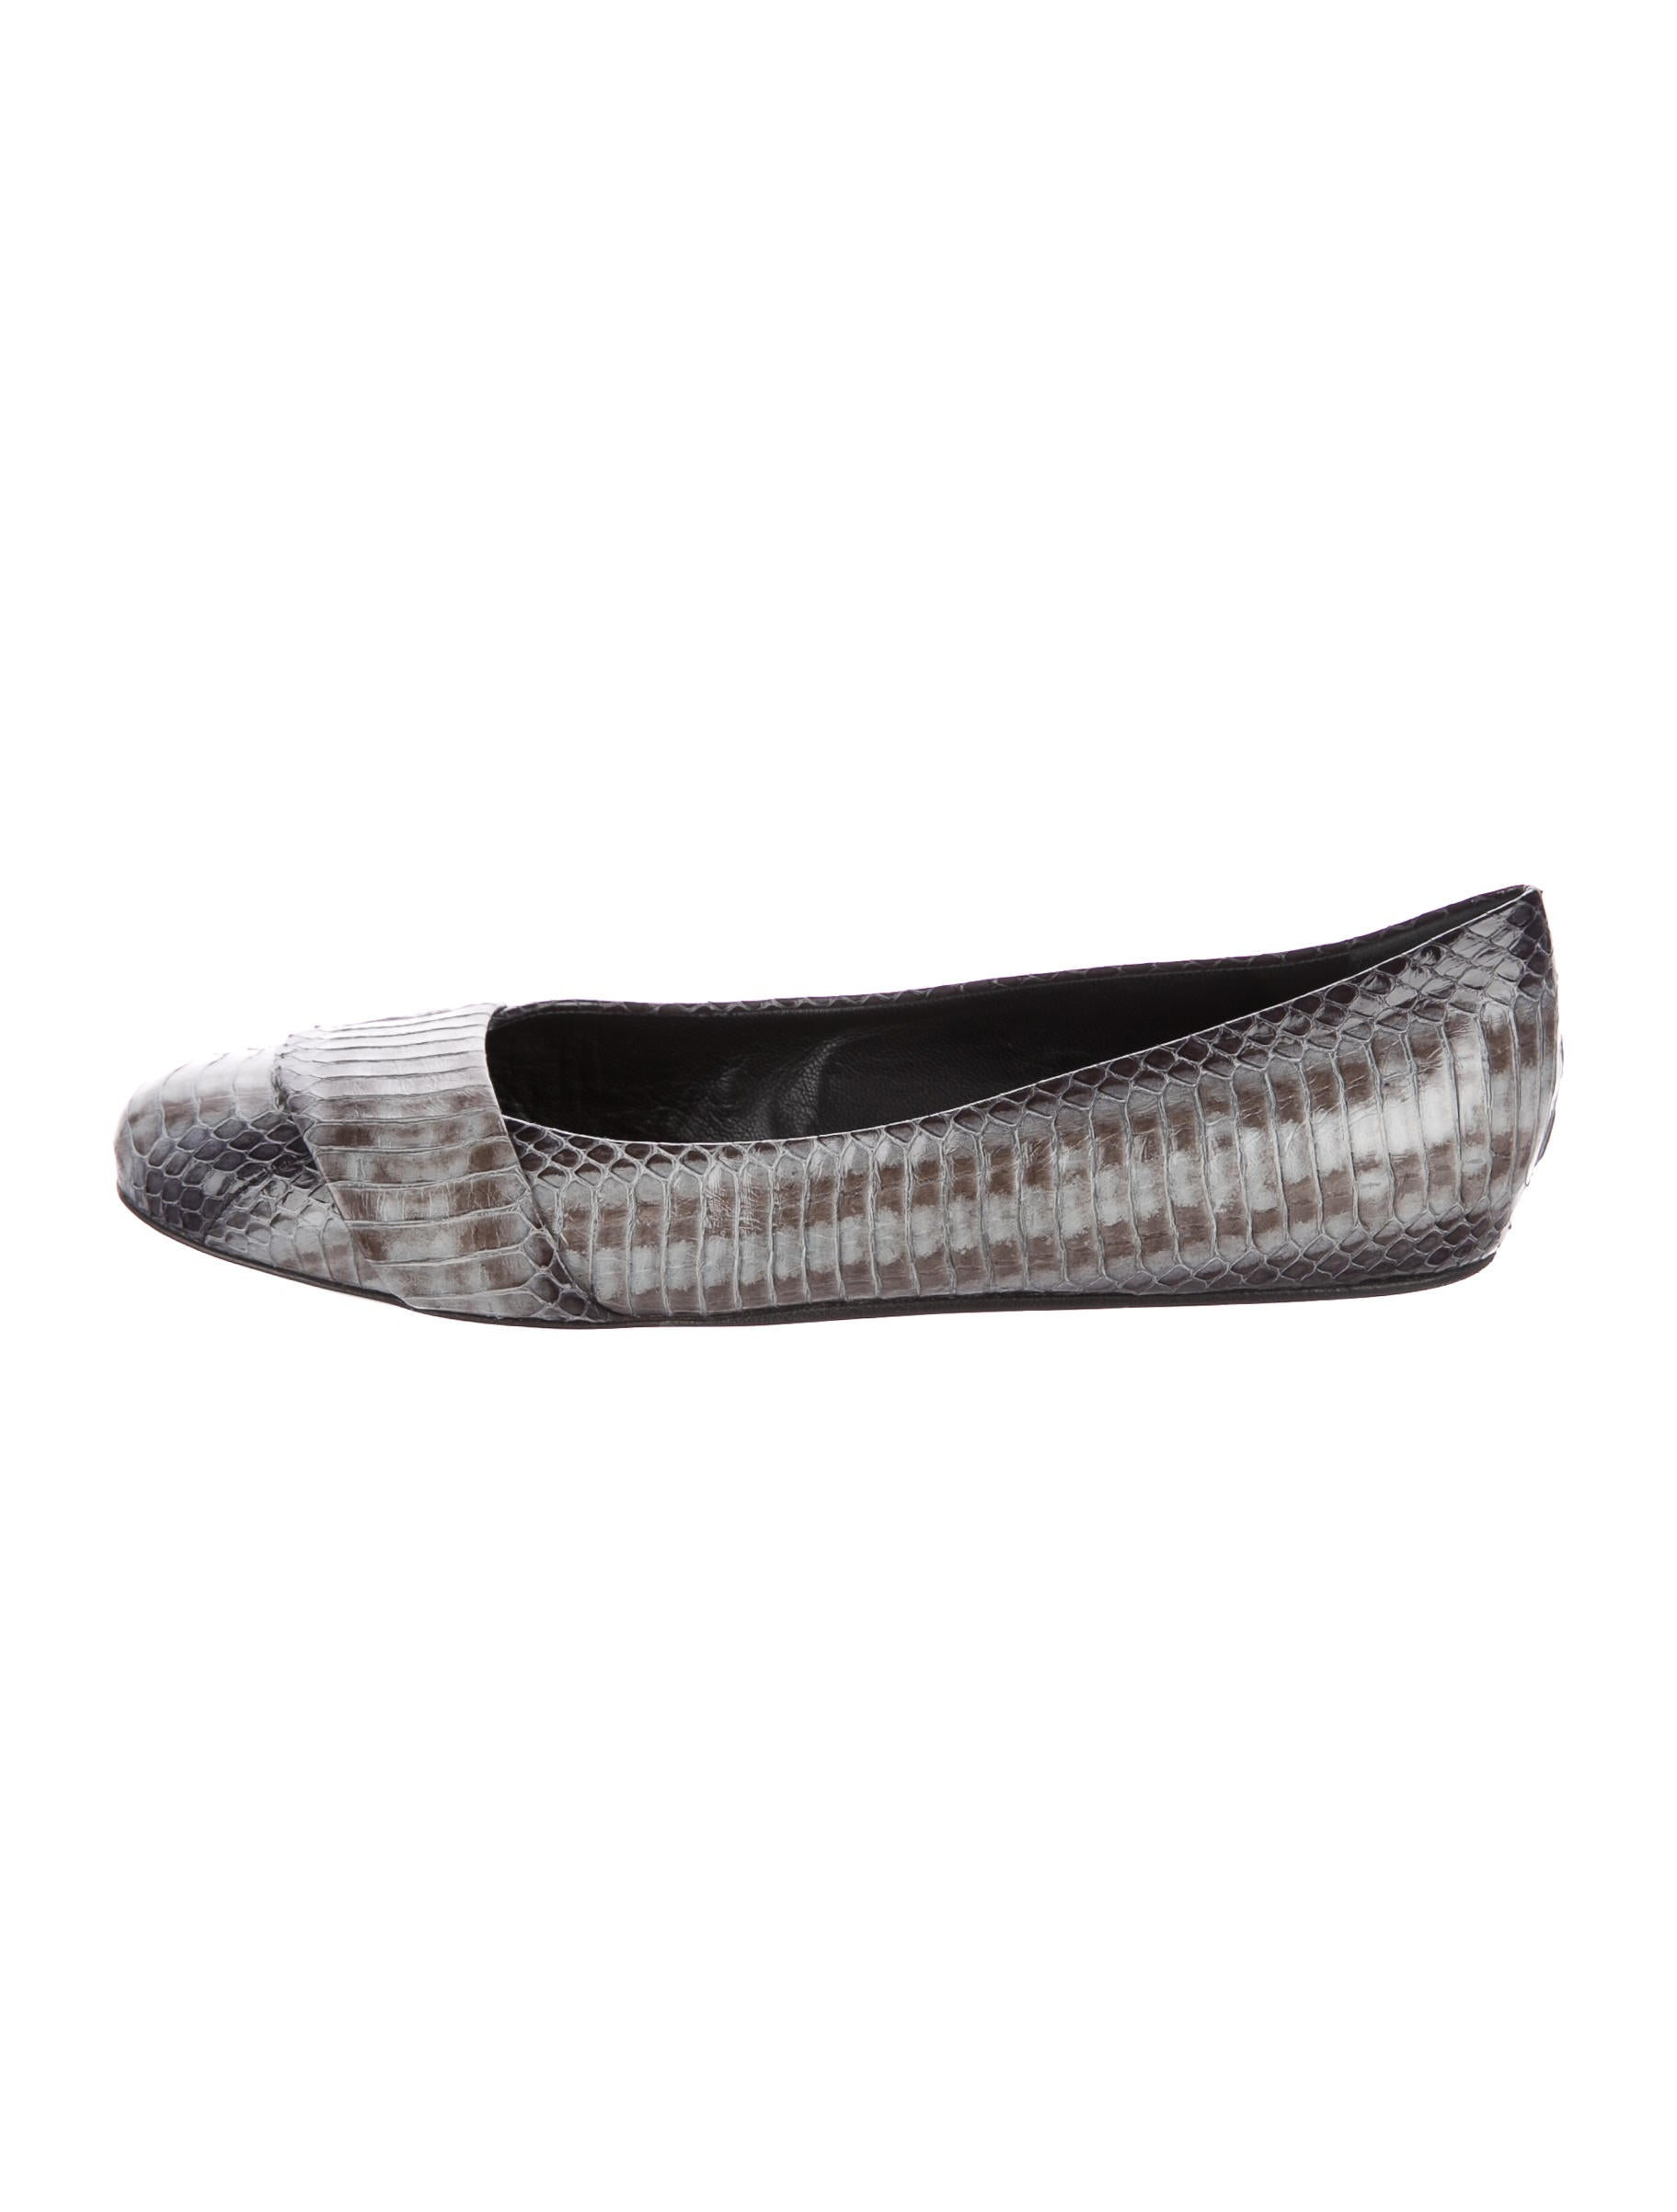 Devi Kroell Round-Toe Python Flats geniue stockist for sale sale 2014 newest cheap sale 2015 new SSpRR9BbE